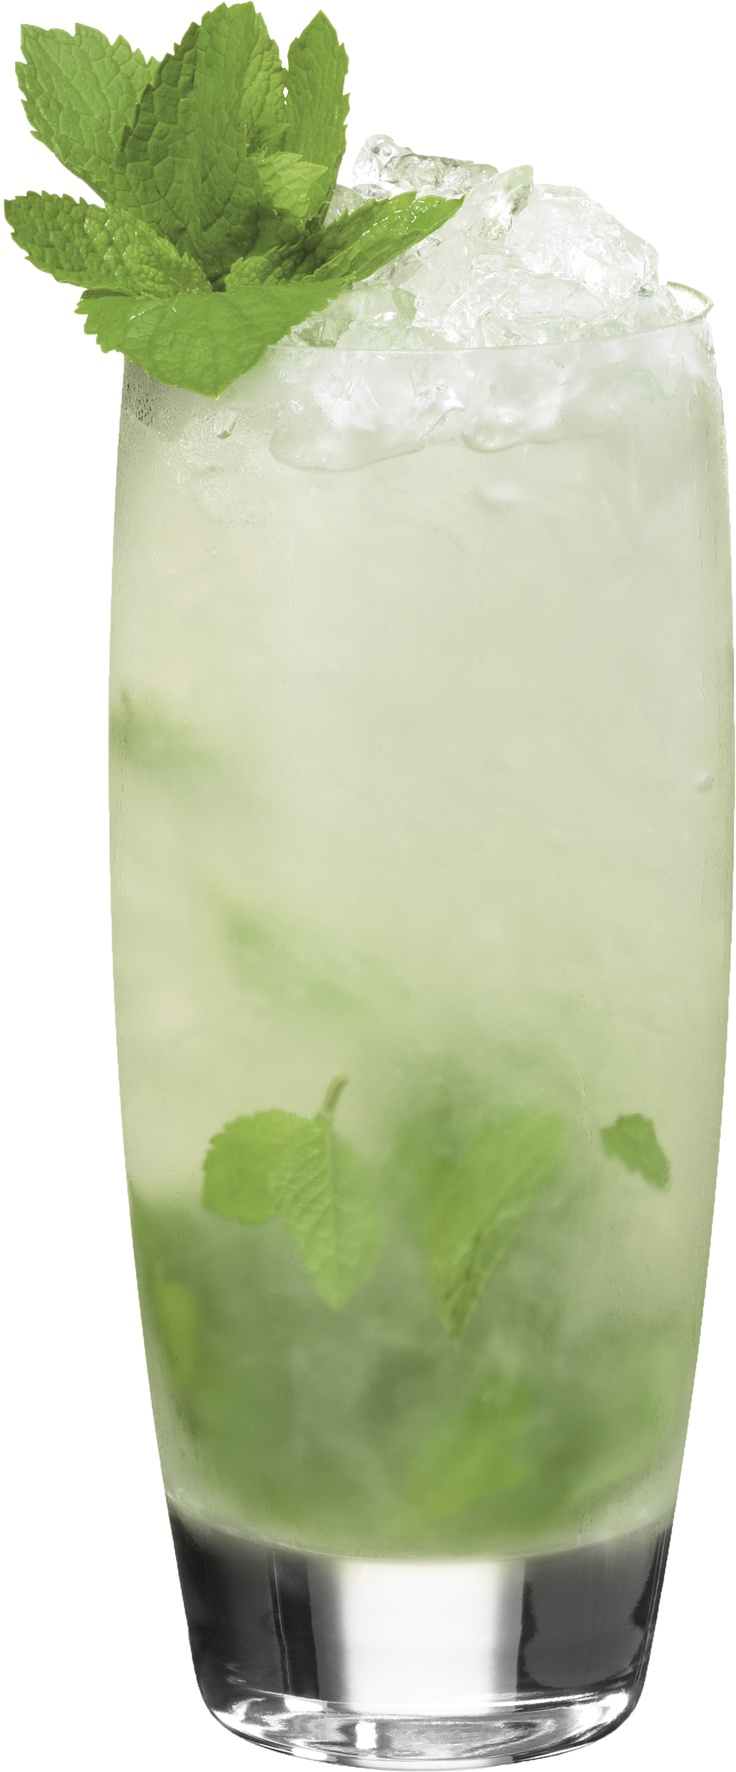 The Classic Mojito. Just mint, lime and sugar for one of the most popular cocktails in the world